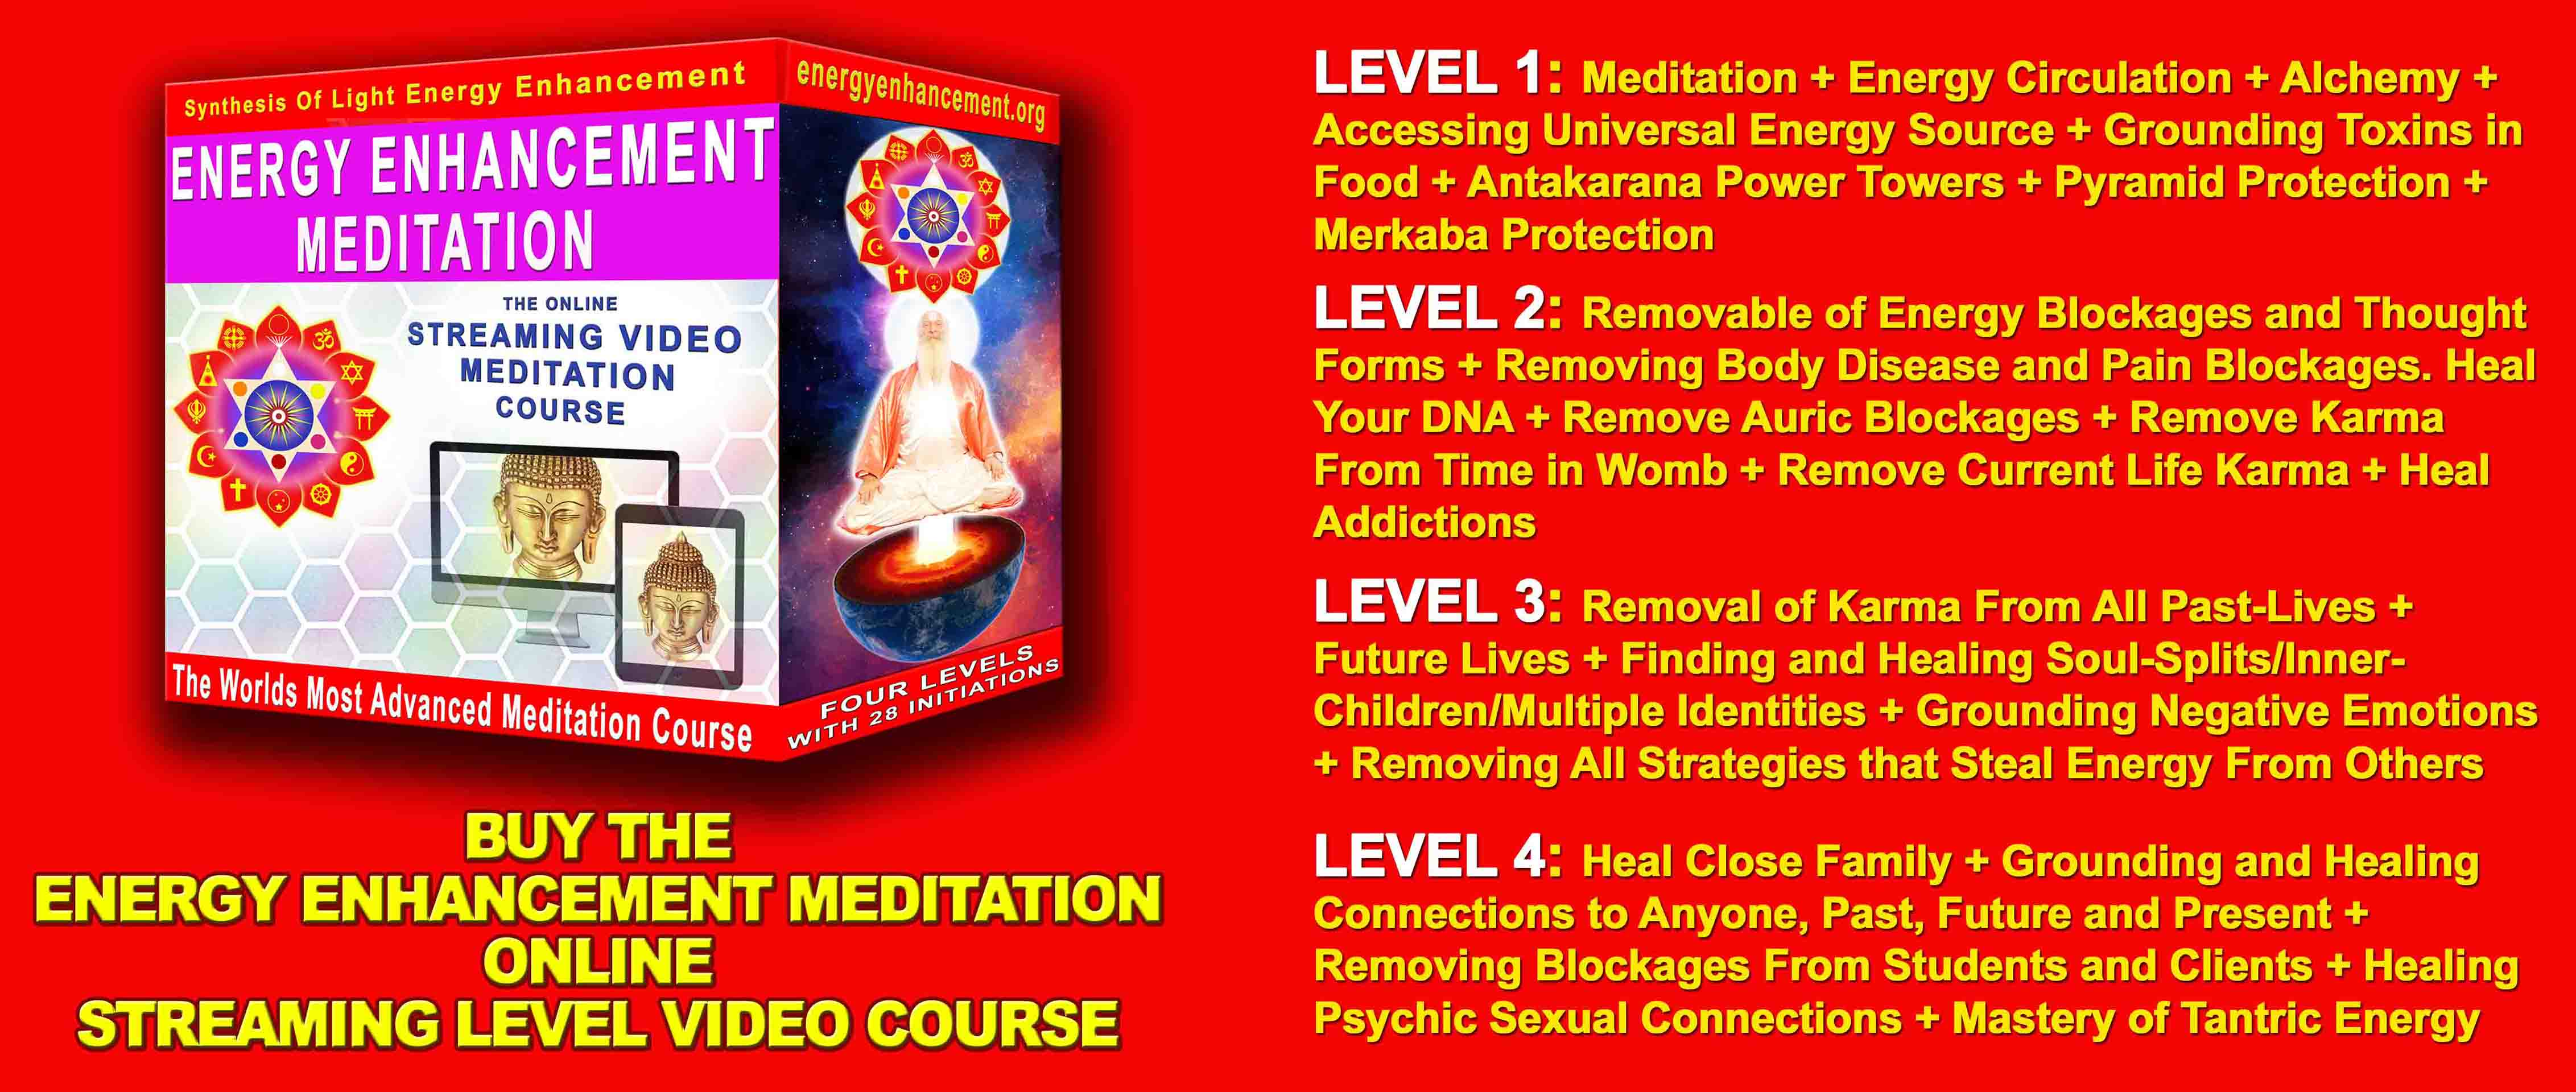 Meditation Enlightenment and Illumination Remove Entities